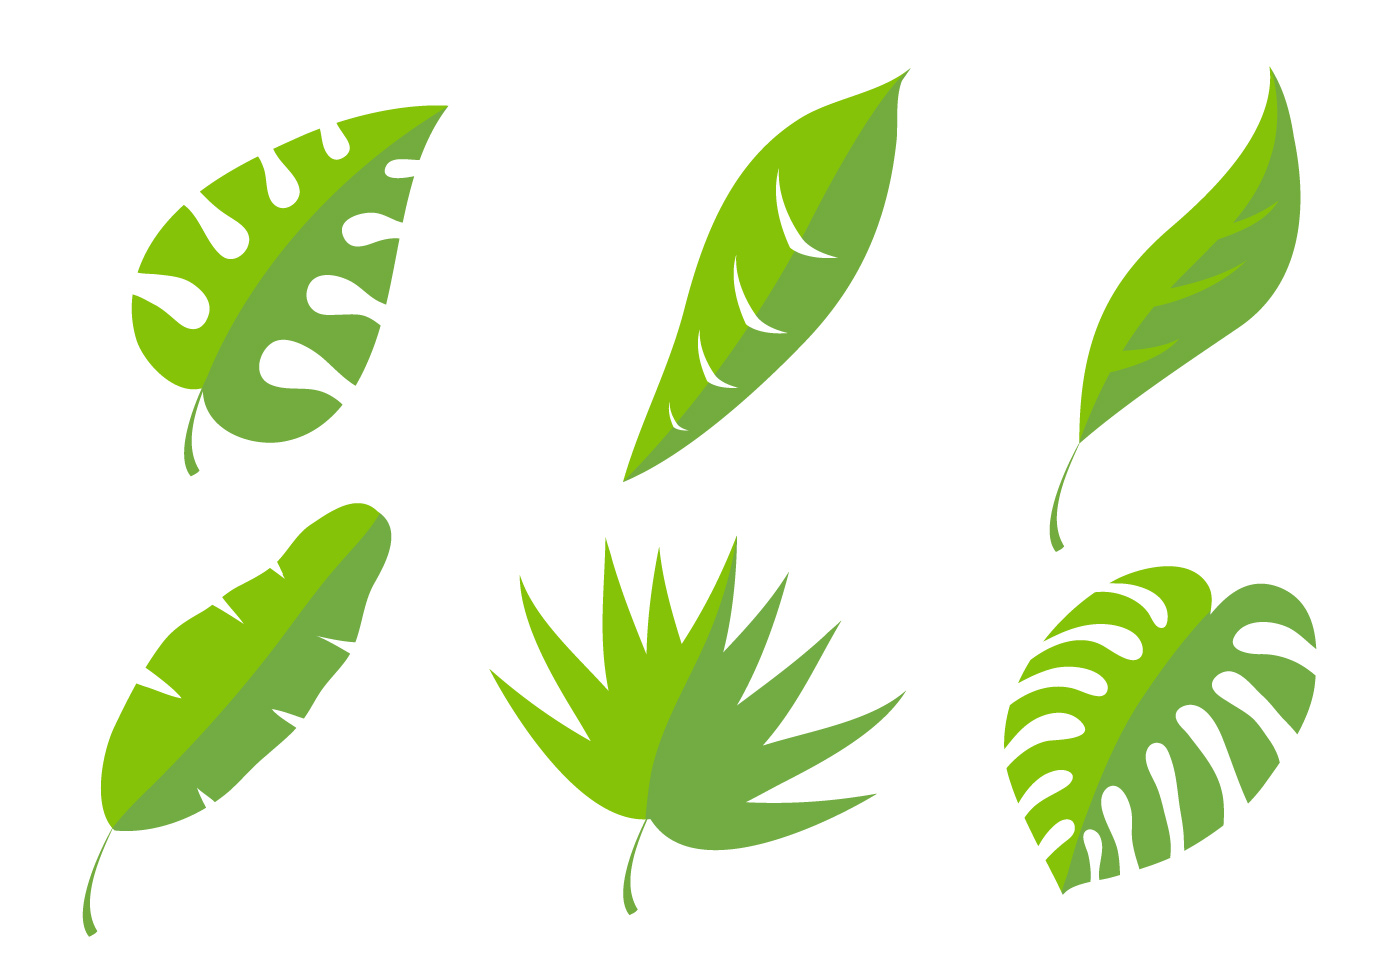 palm leaf vectors download free vector art  stock Free Clip Art Black and White Beach Palm Tree Free Snowflake Clip Art Black and White